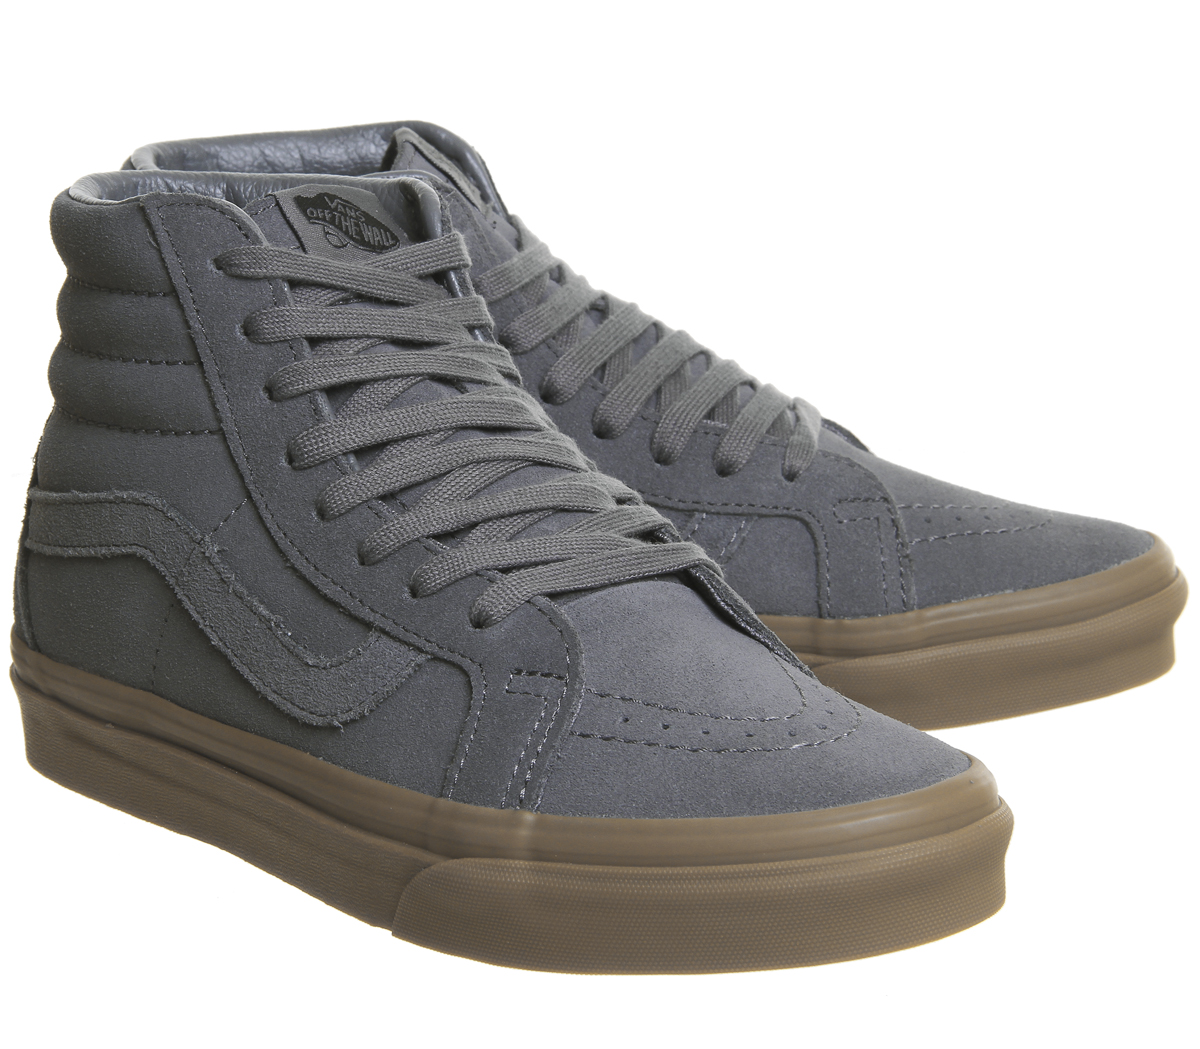 d4aeadc5b0 Mens Vans Sk8 Hi Trainers Grey Suede Gum Exclusive Trainers Shoes